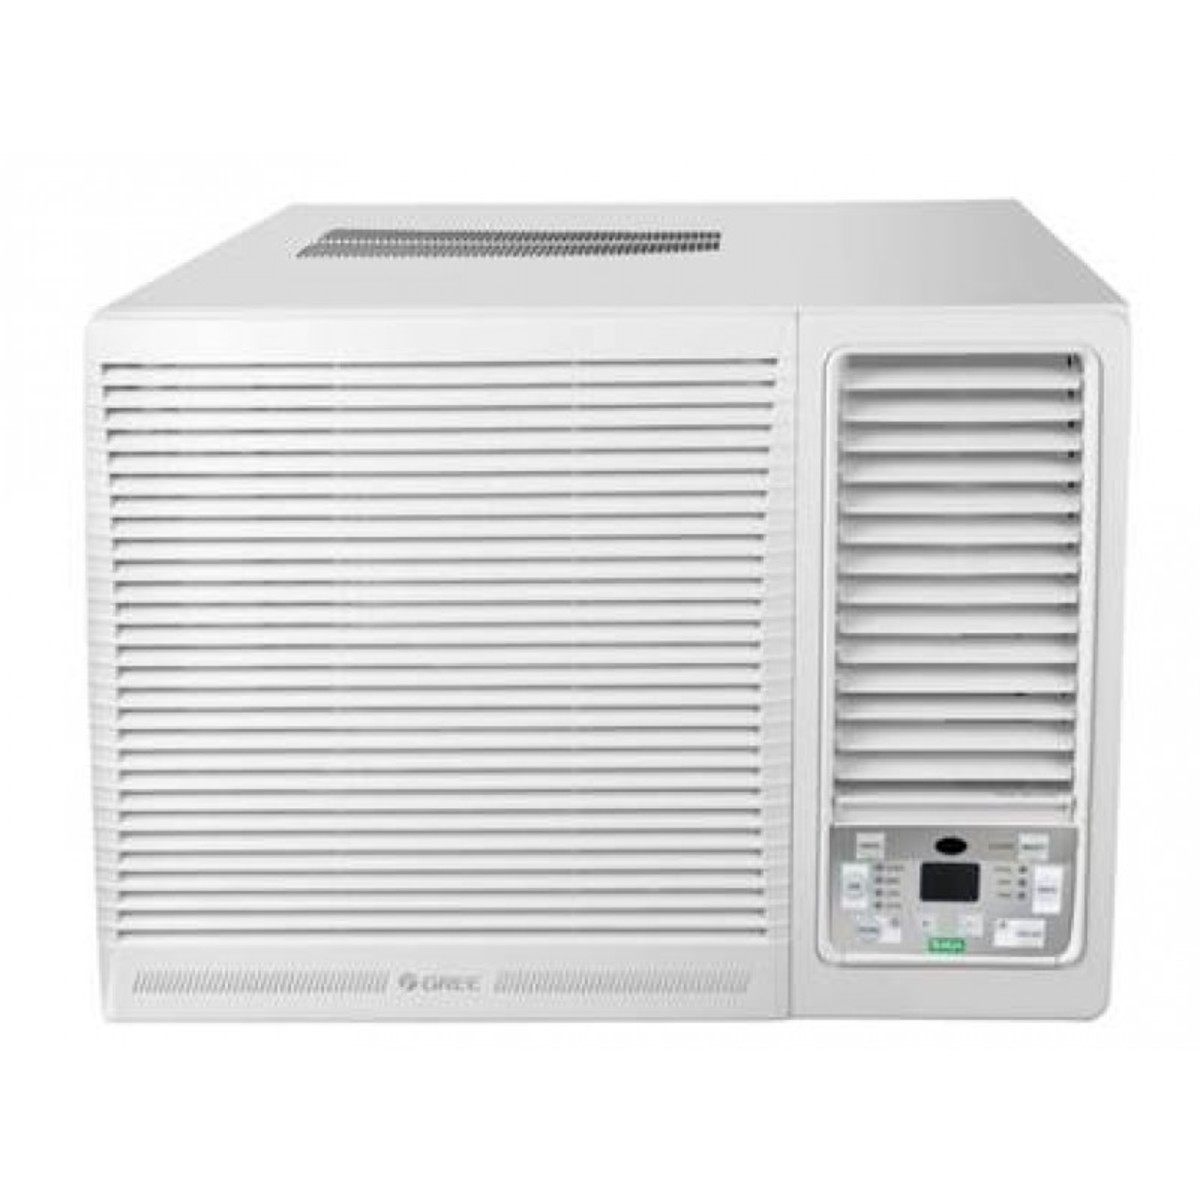 G1807VR 3/4HP Window Type Conditioner with Remote Control